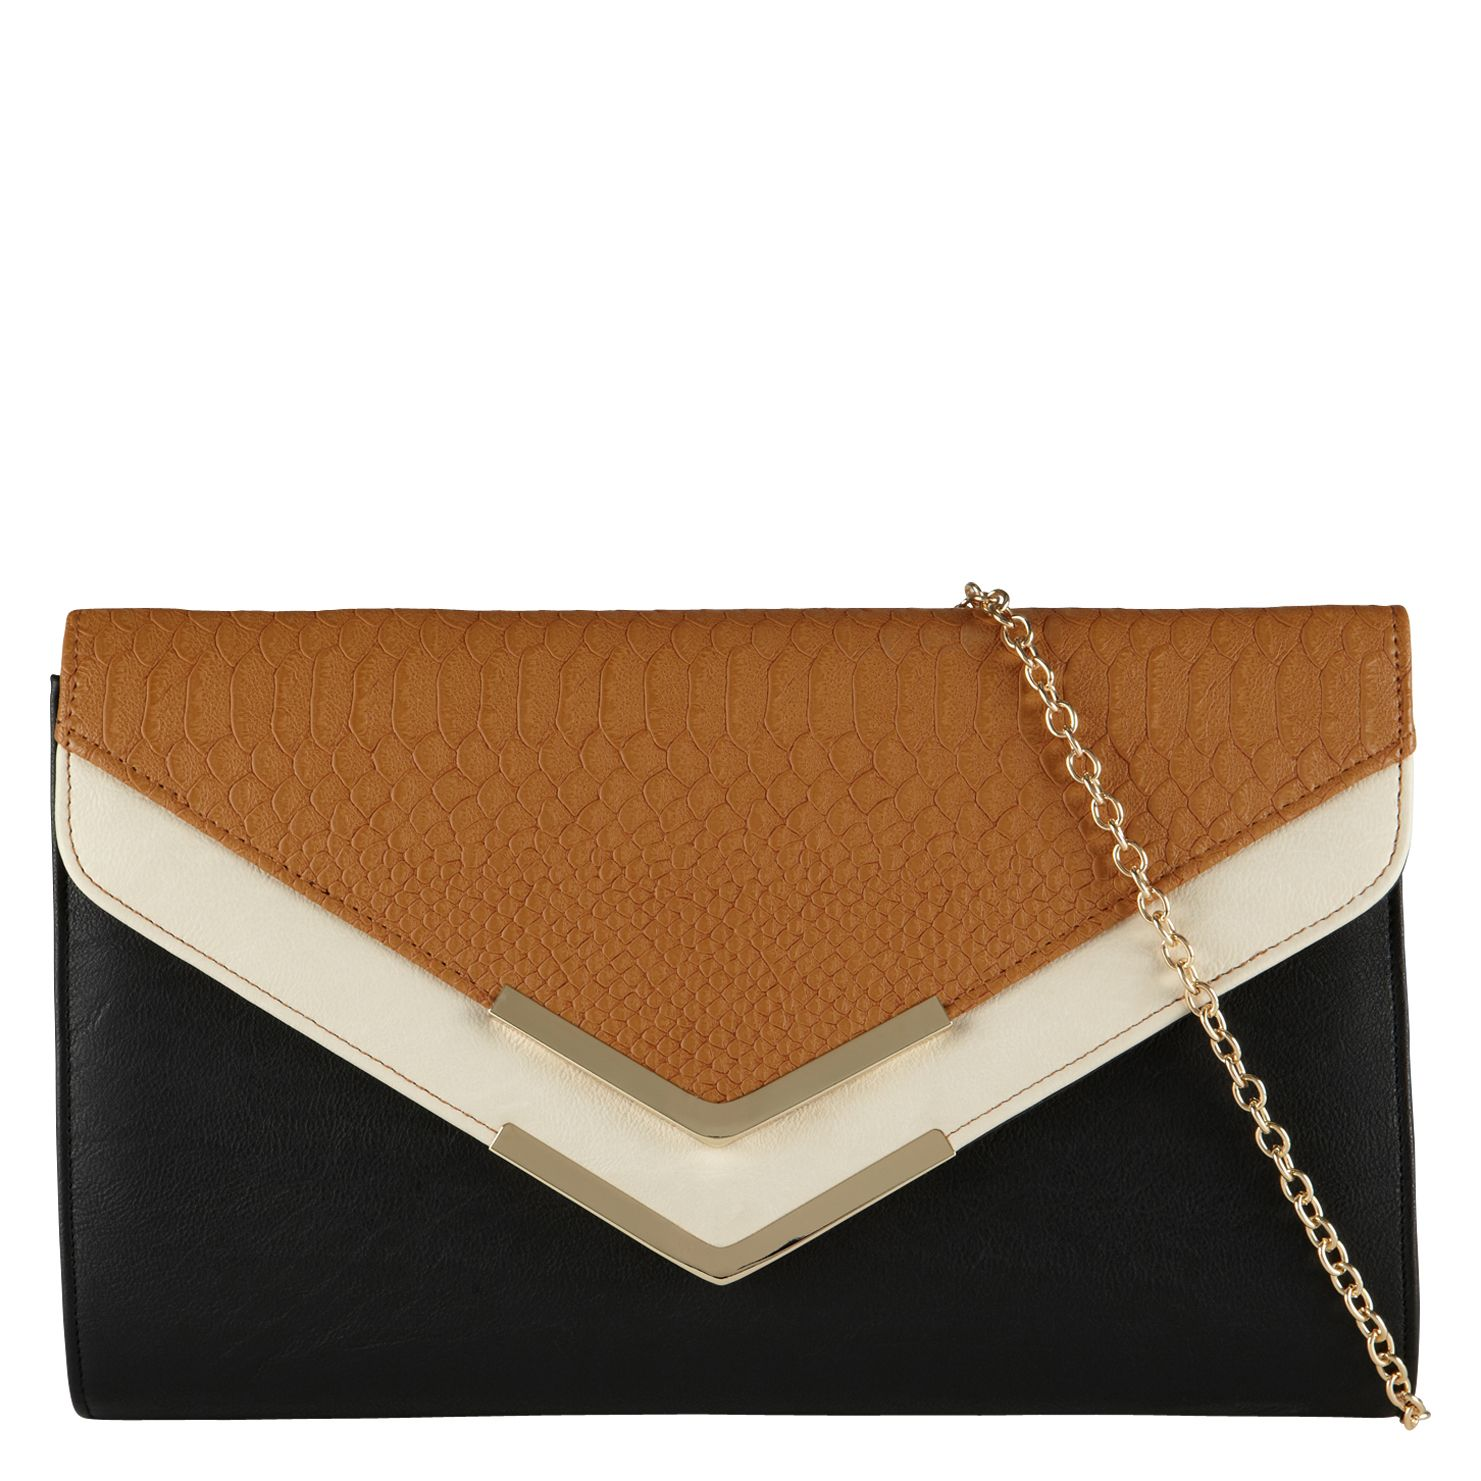 Elroissa clutch bag